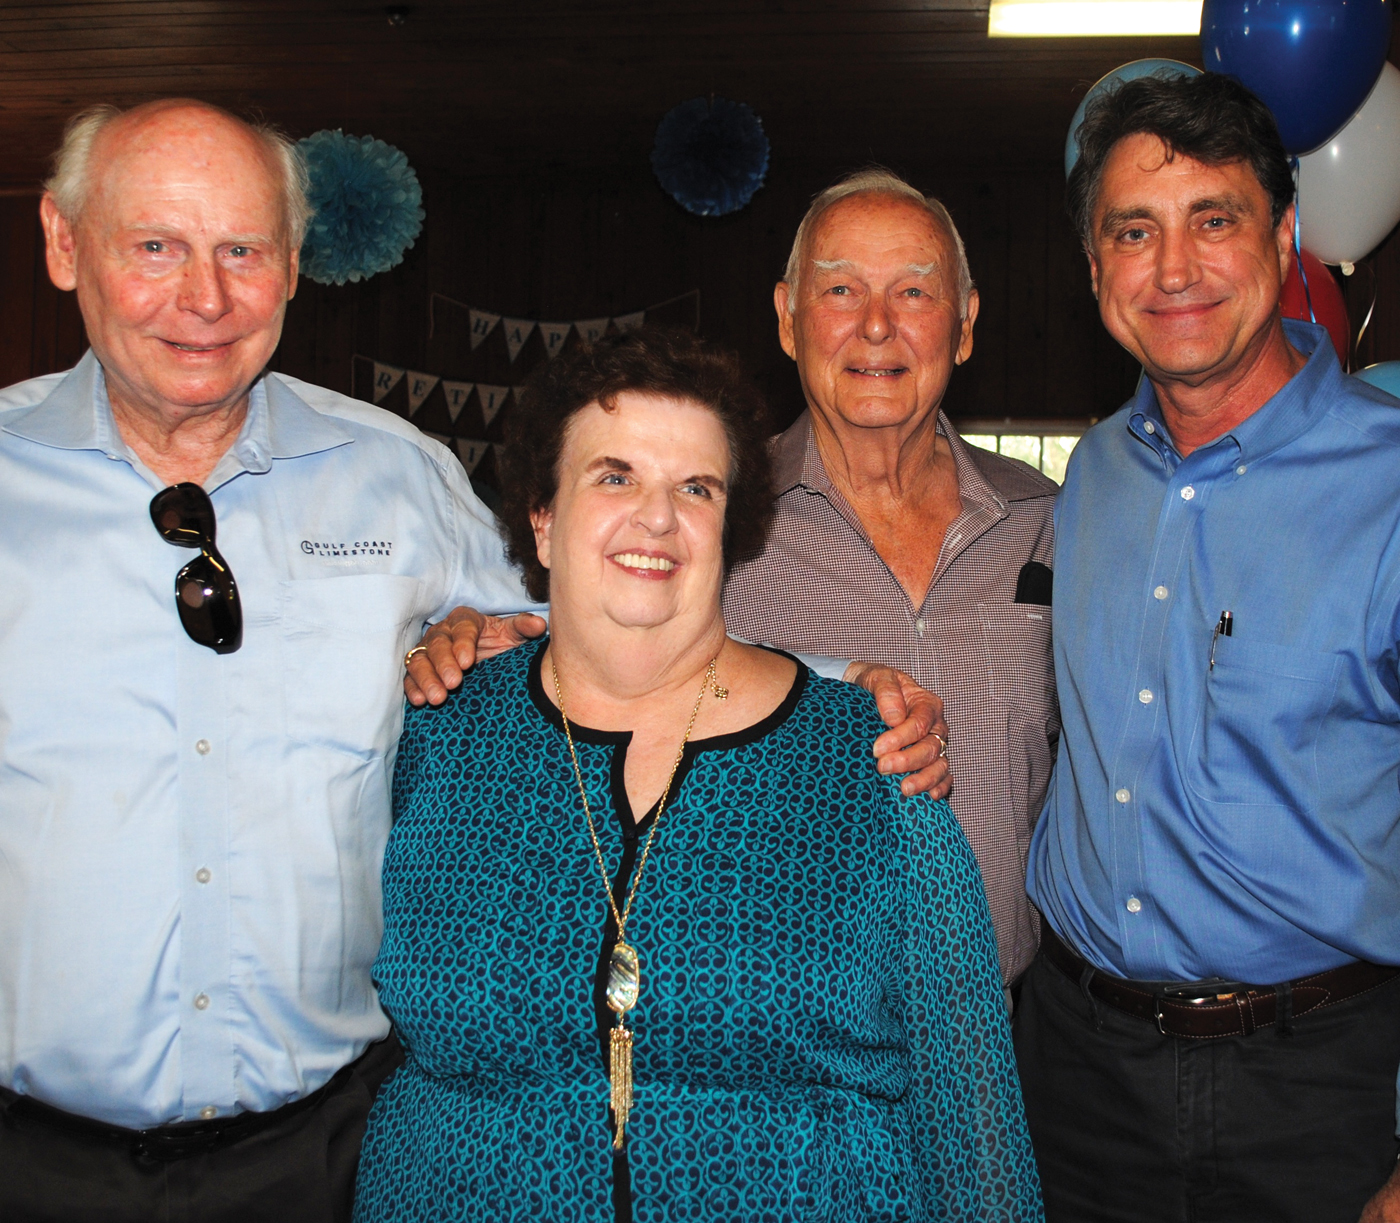 Seabrook Mayor Glenn Royal, right, former Mayor Bob Robinson, left, and Perry Christy wish Michele Glaser a happy bon voyage into retirement at the party in her honor. Christy's ancestors had the original Ritson- Morris Spanish land grant when they settled in what is now Seabrook many decades ago.